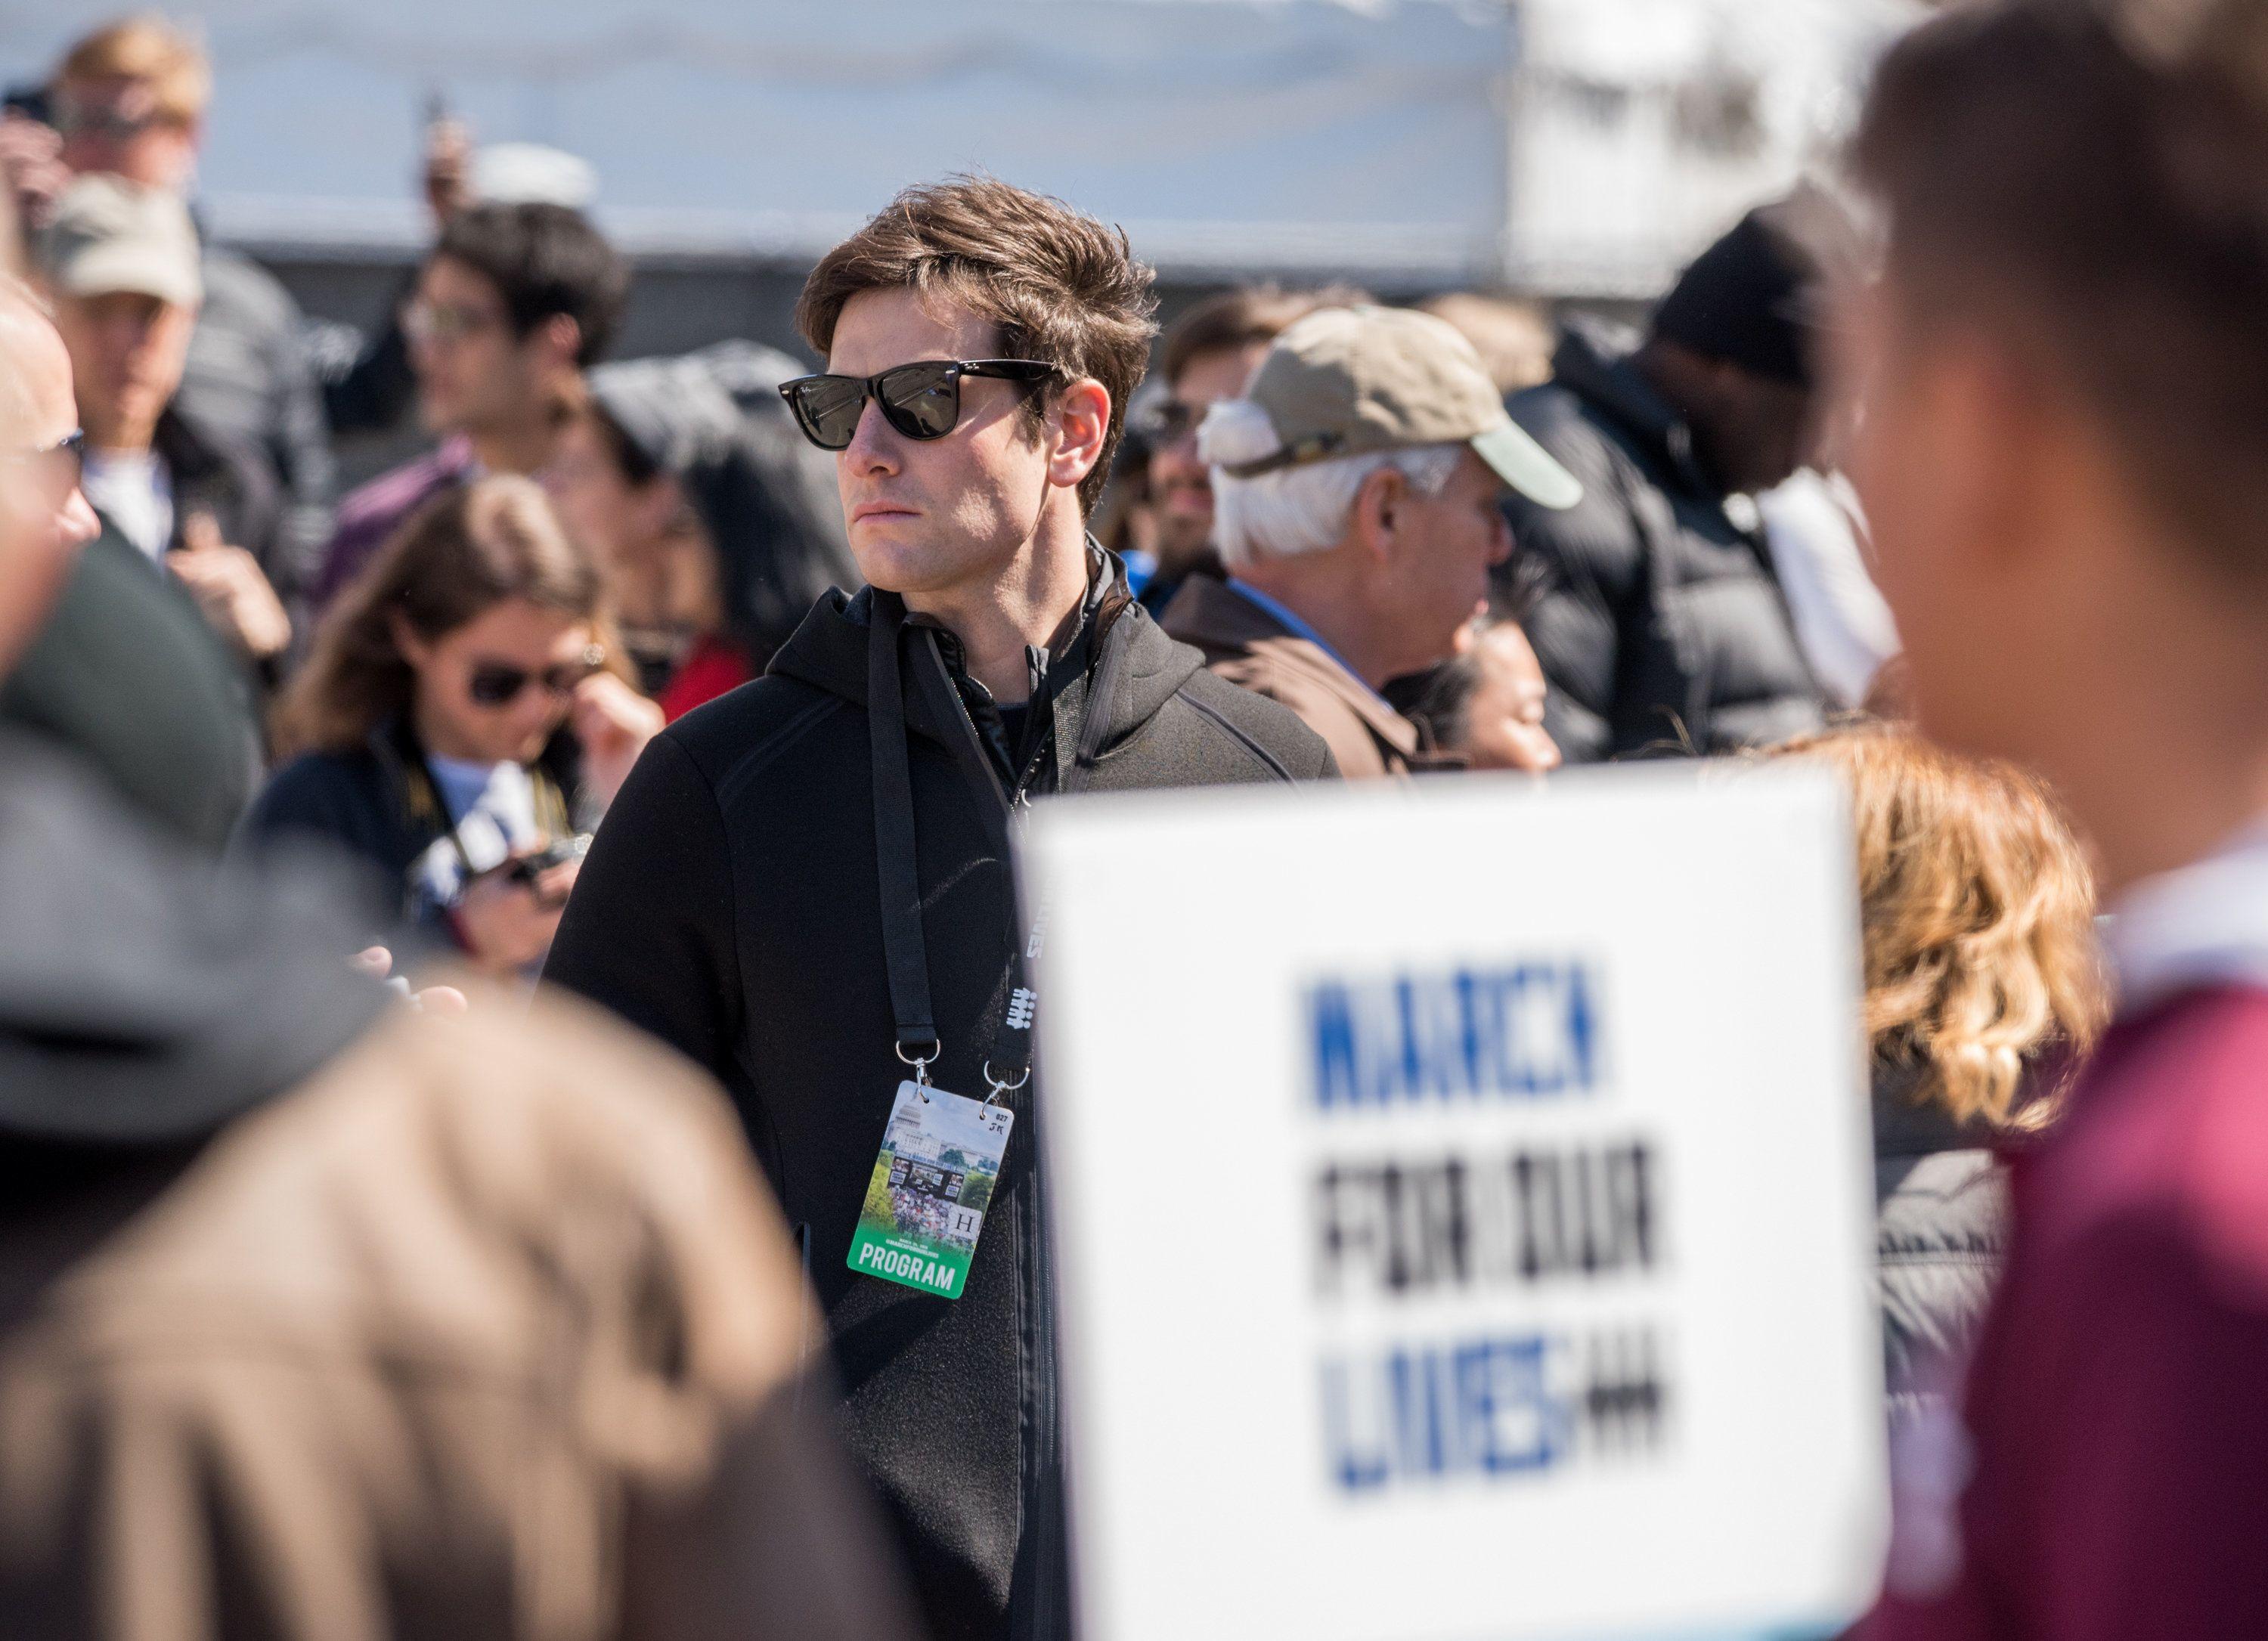 Jared Kushner's Younger Brother Had Vowed To #MarchForOurLives. And He Did